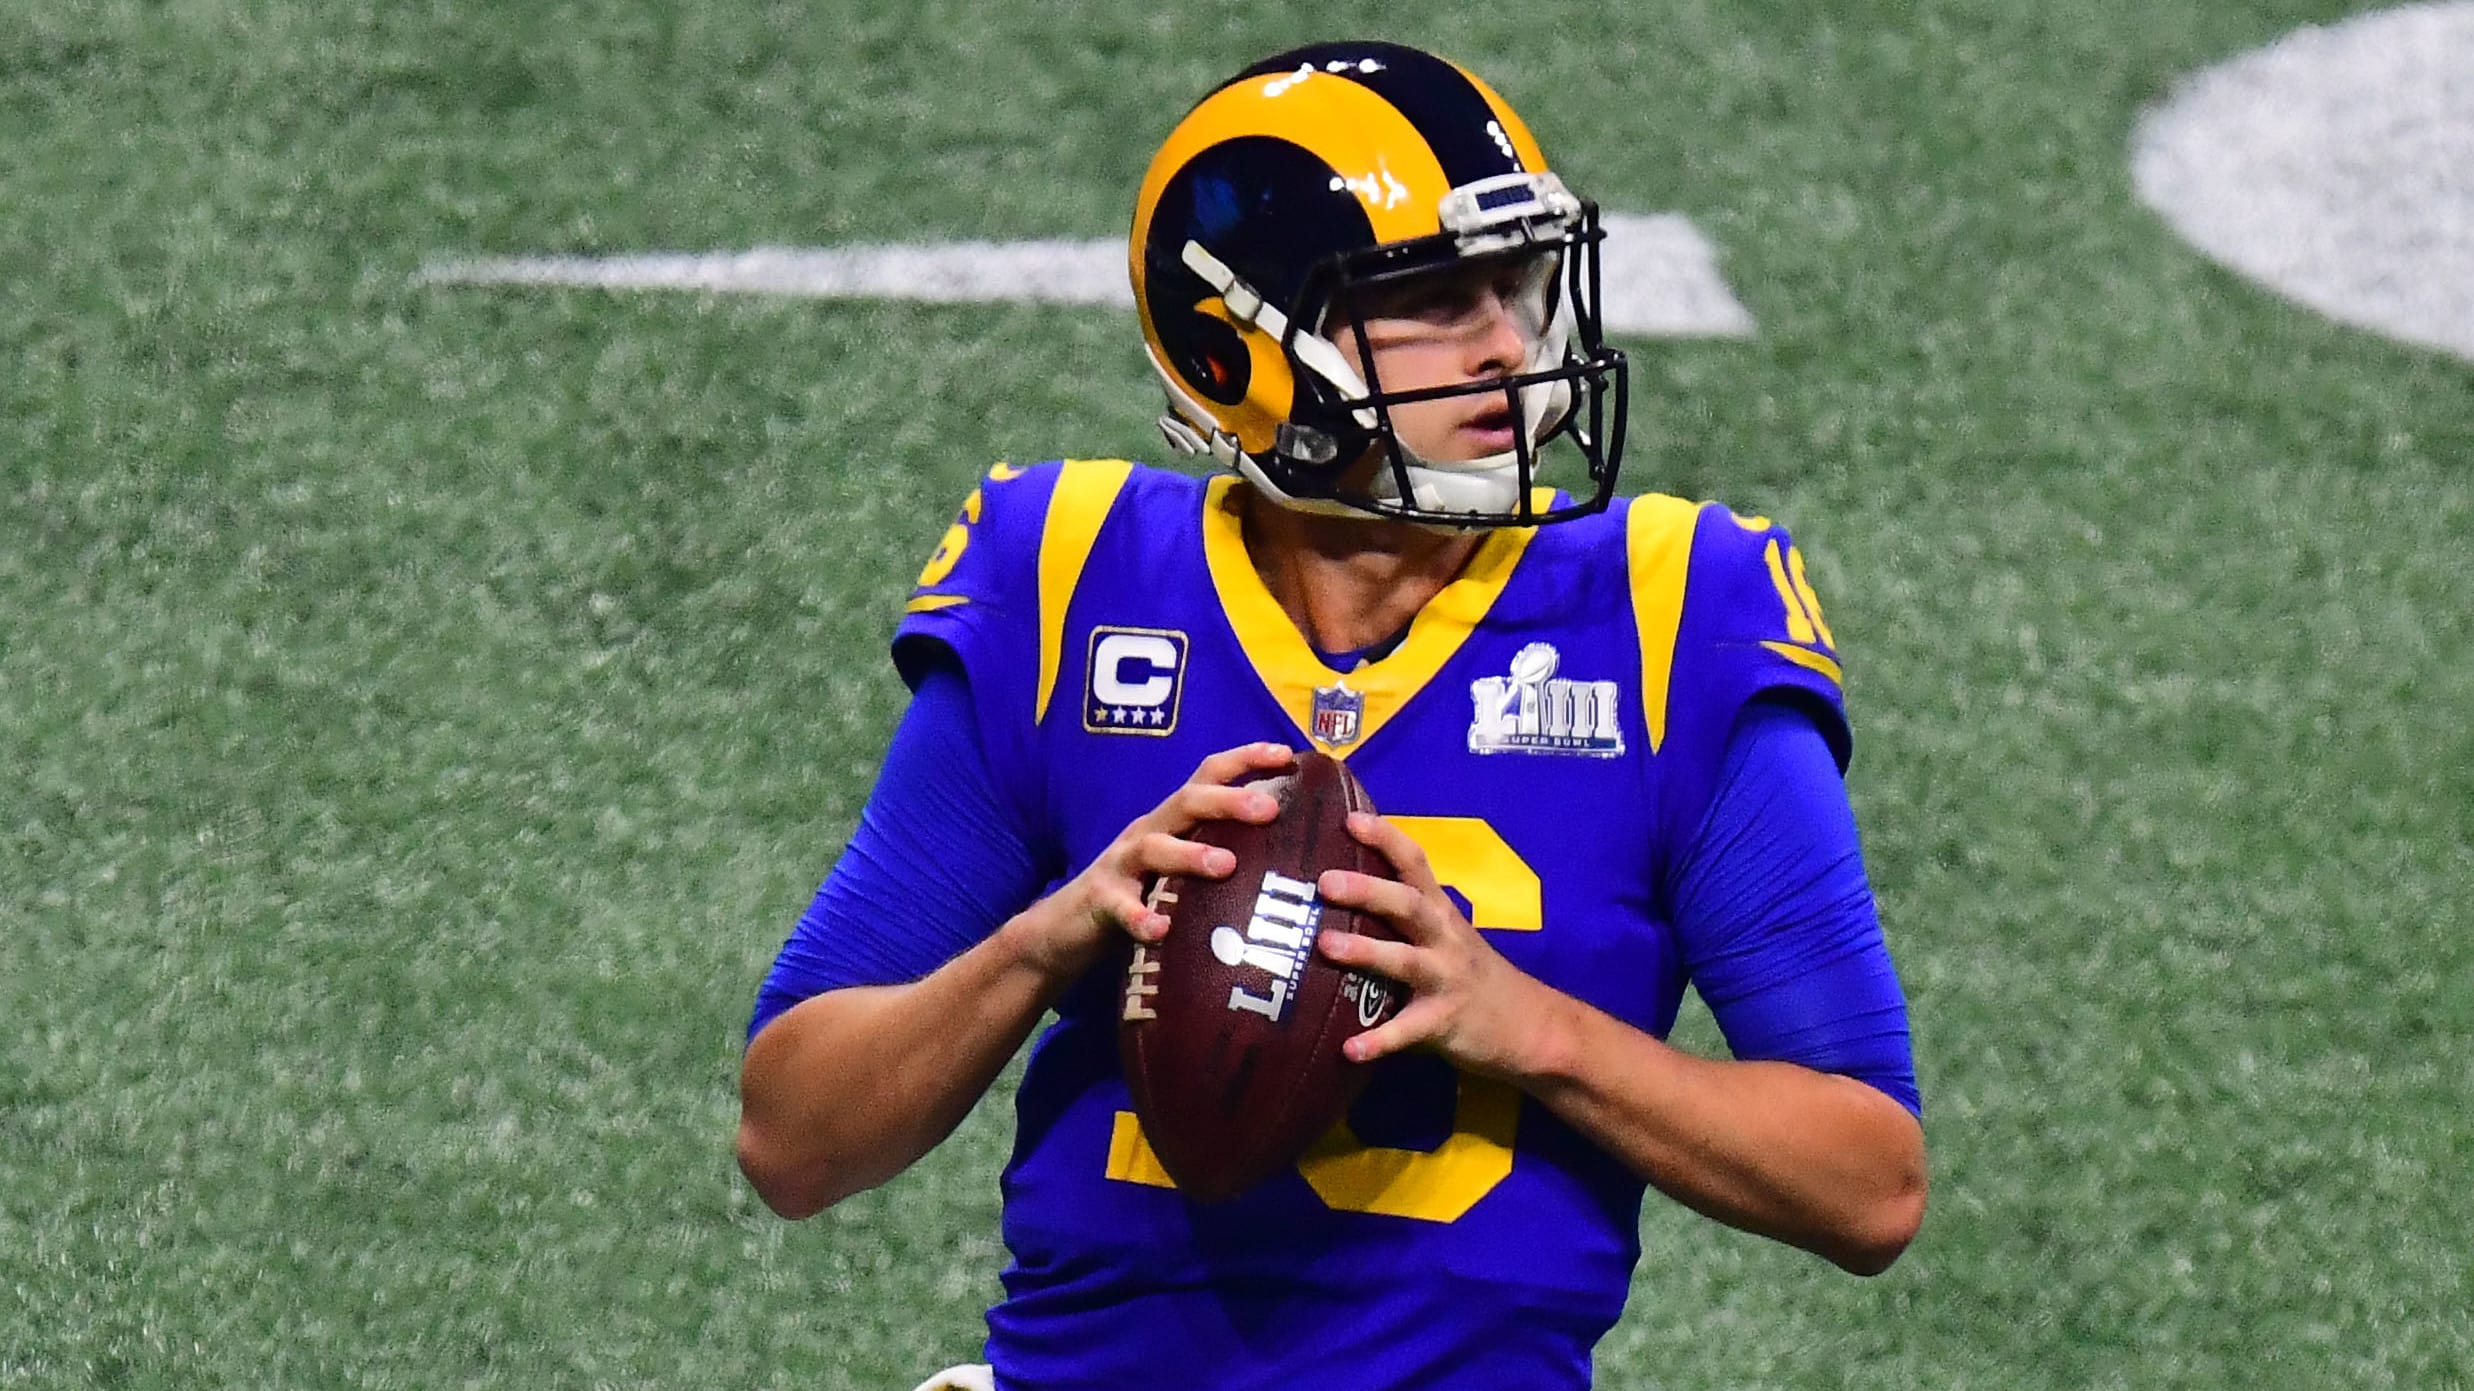 ATLANTA, GEORGIA - FEBRUARY 03: Jared Goff #16 of the Los Angeles Rams attempts a pass against New England Patriots in the second half  during Super Bowl LIII at Mercedes-Benz Stadium on February 03, 2019 in Atlanta, Georgia. (Photo by Scott Cunningham/Getty Images)